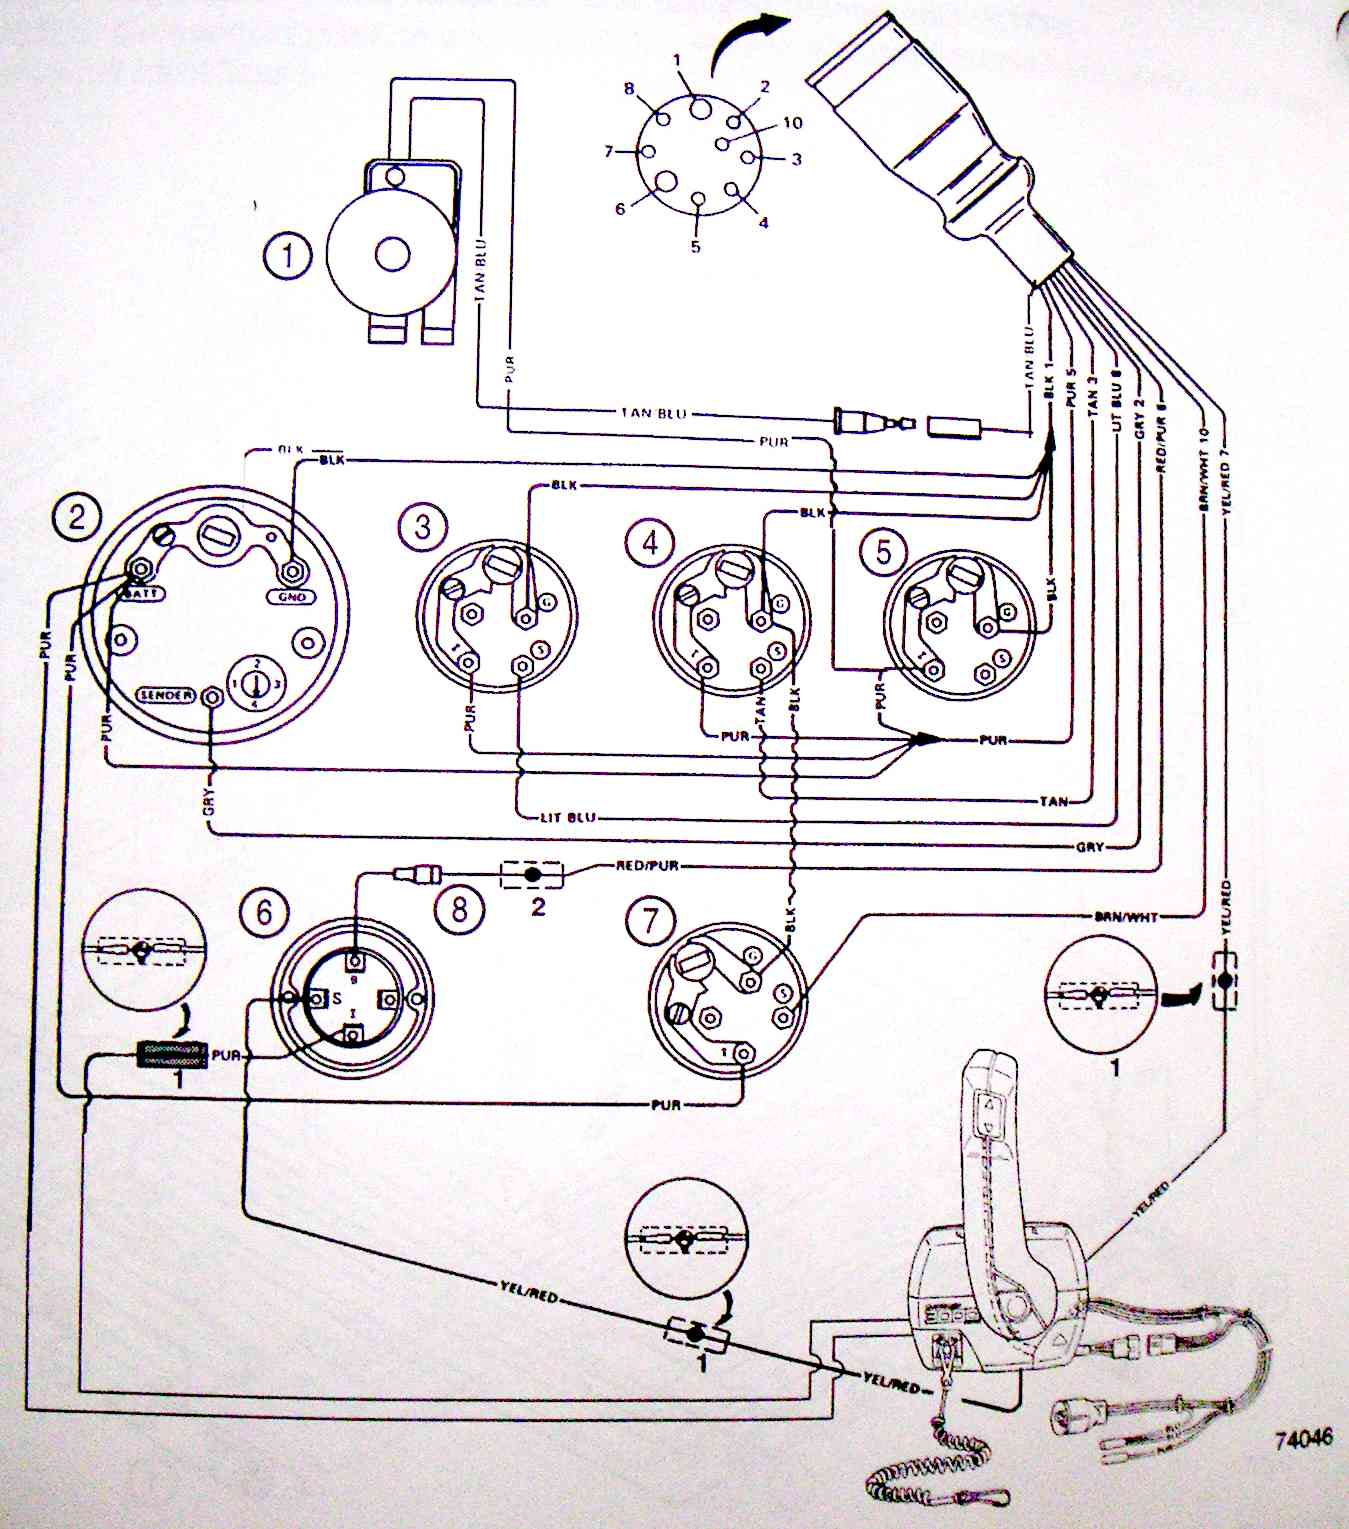 Mercruiser Tilt Trim Gauge Wiring Diagram | Wiring Diagram - Mercruiser Trim Sender Wiring Diagram